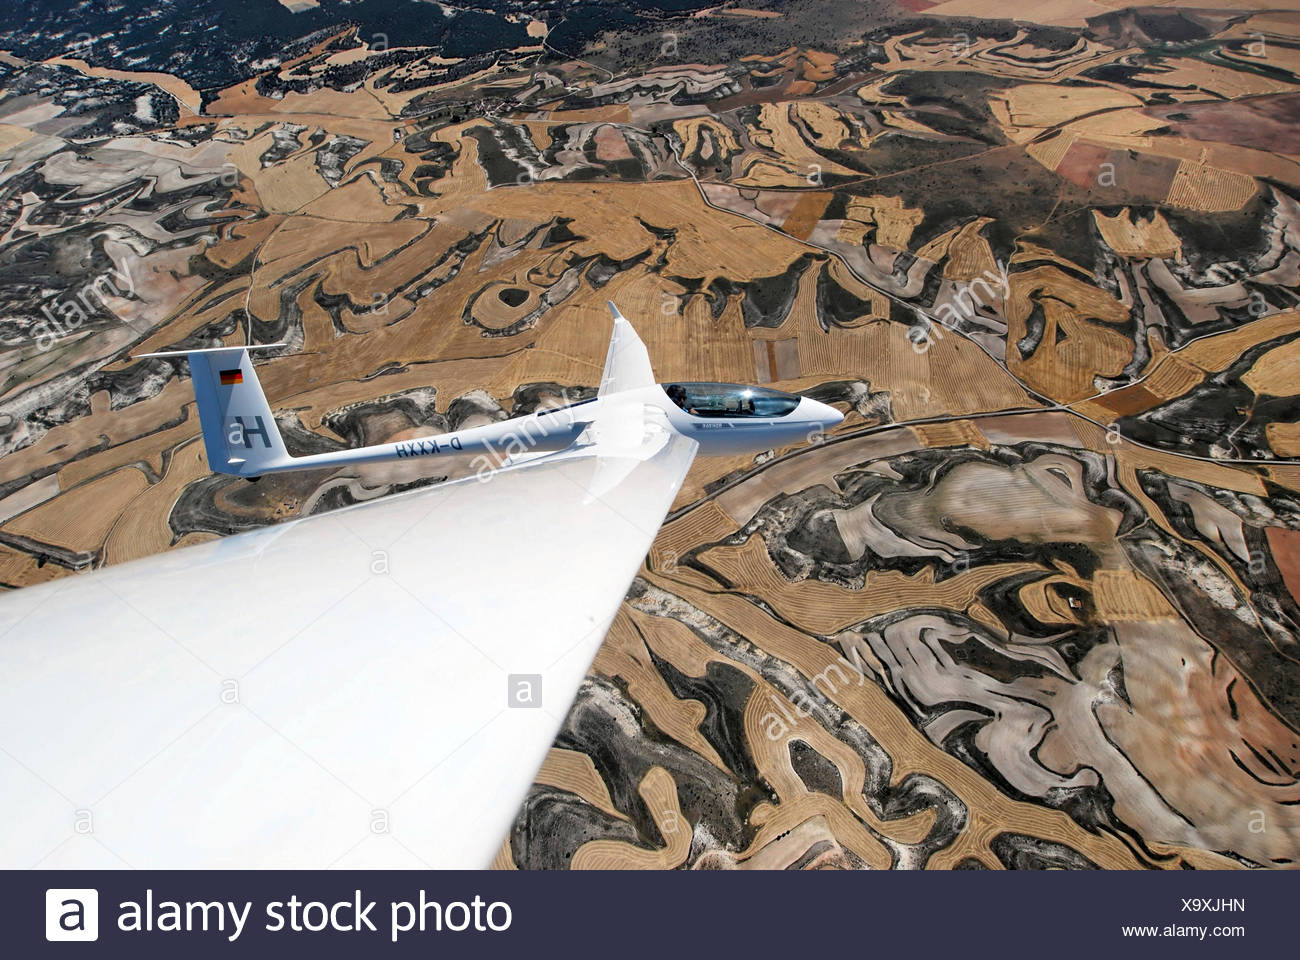 Aerial view, type ASH 26 E glider fkying over the Castillian countryside, Segovia, Castile and León, Spain Stock Photo